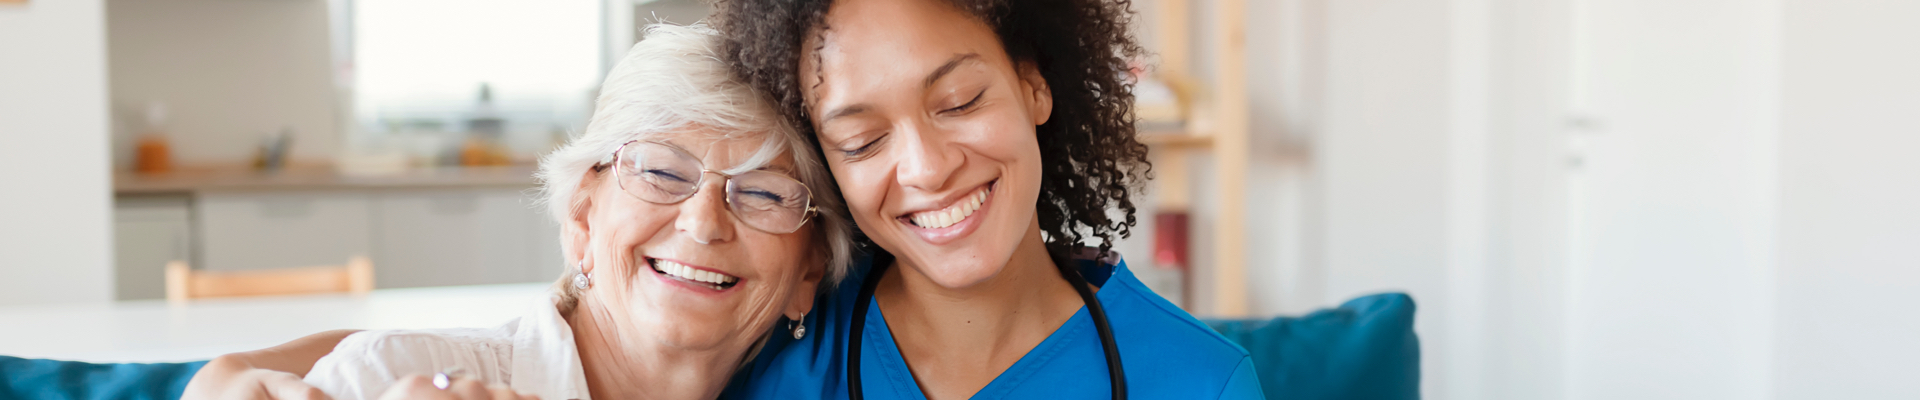 a health care professional and a senior woman sit side by side smiling and hugging